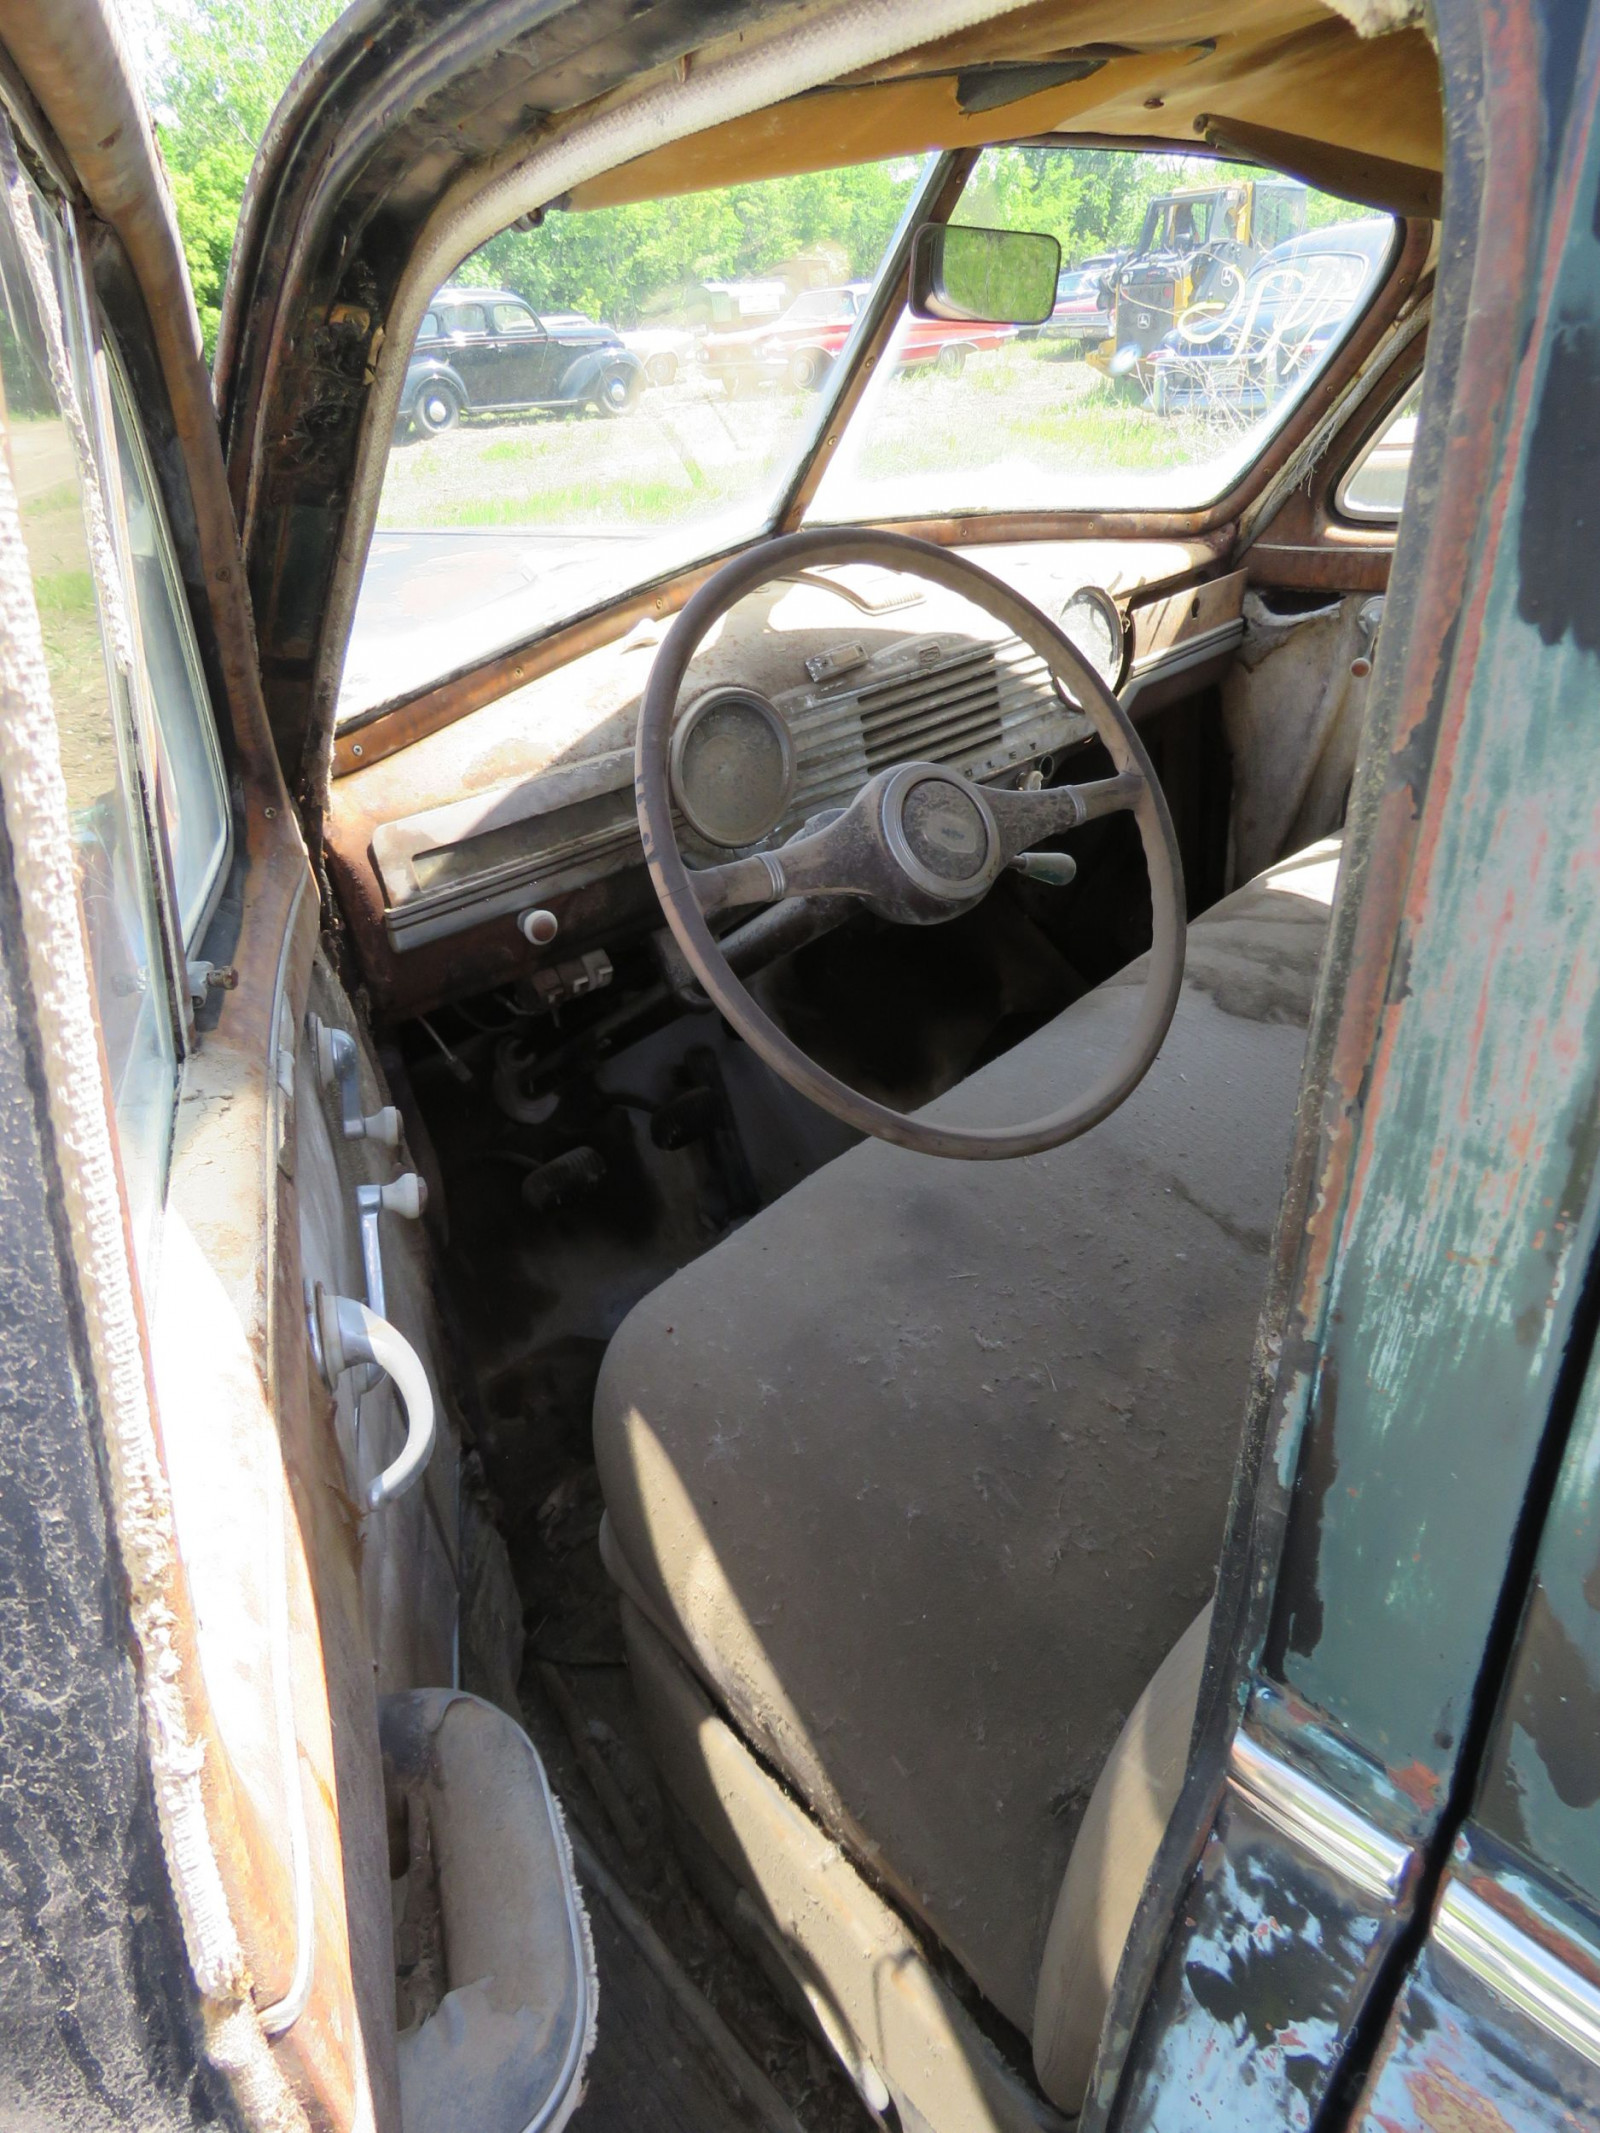 1947 Chevrolet Fleet master 4dr Sedan for Project or parts - Image 7